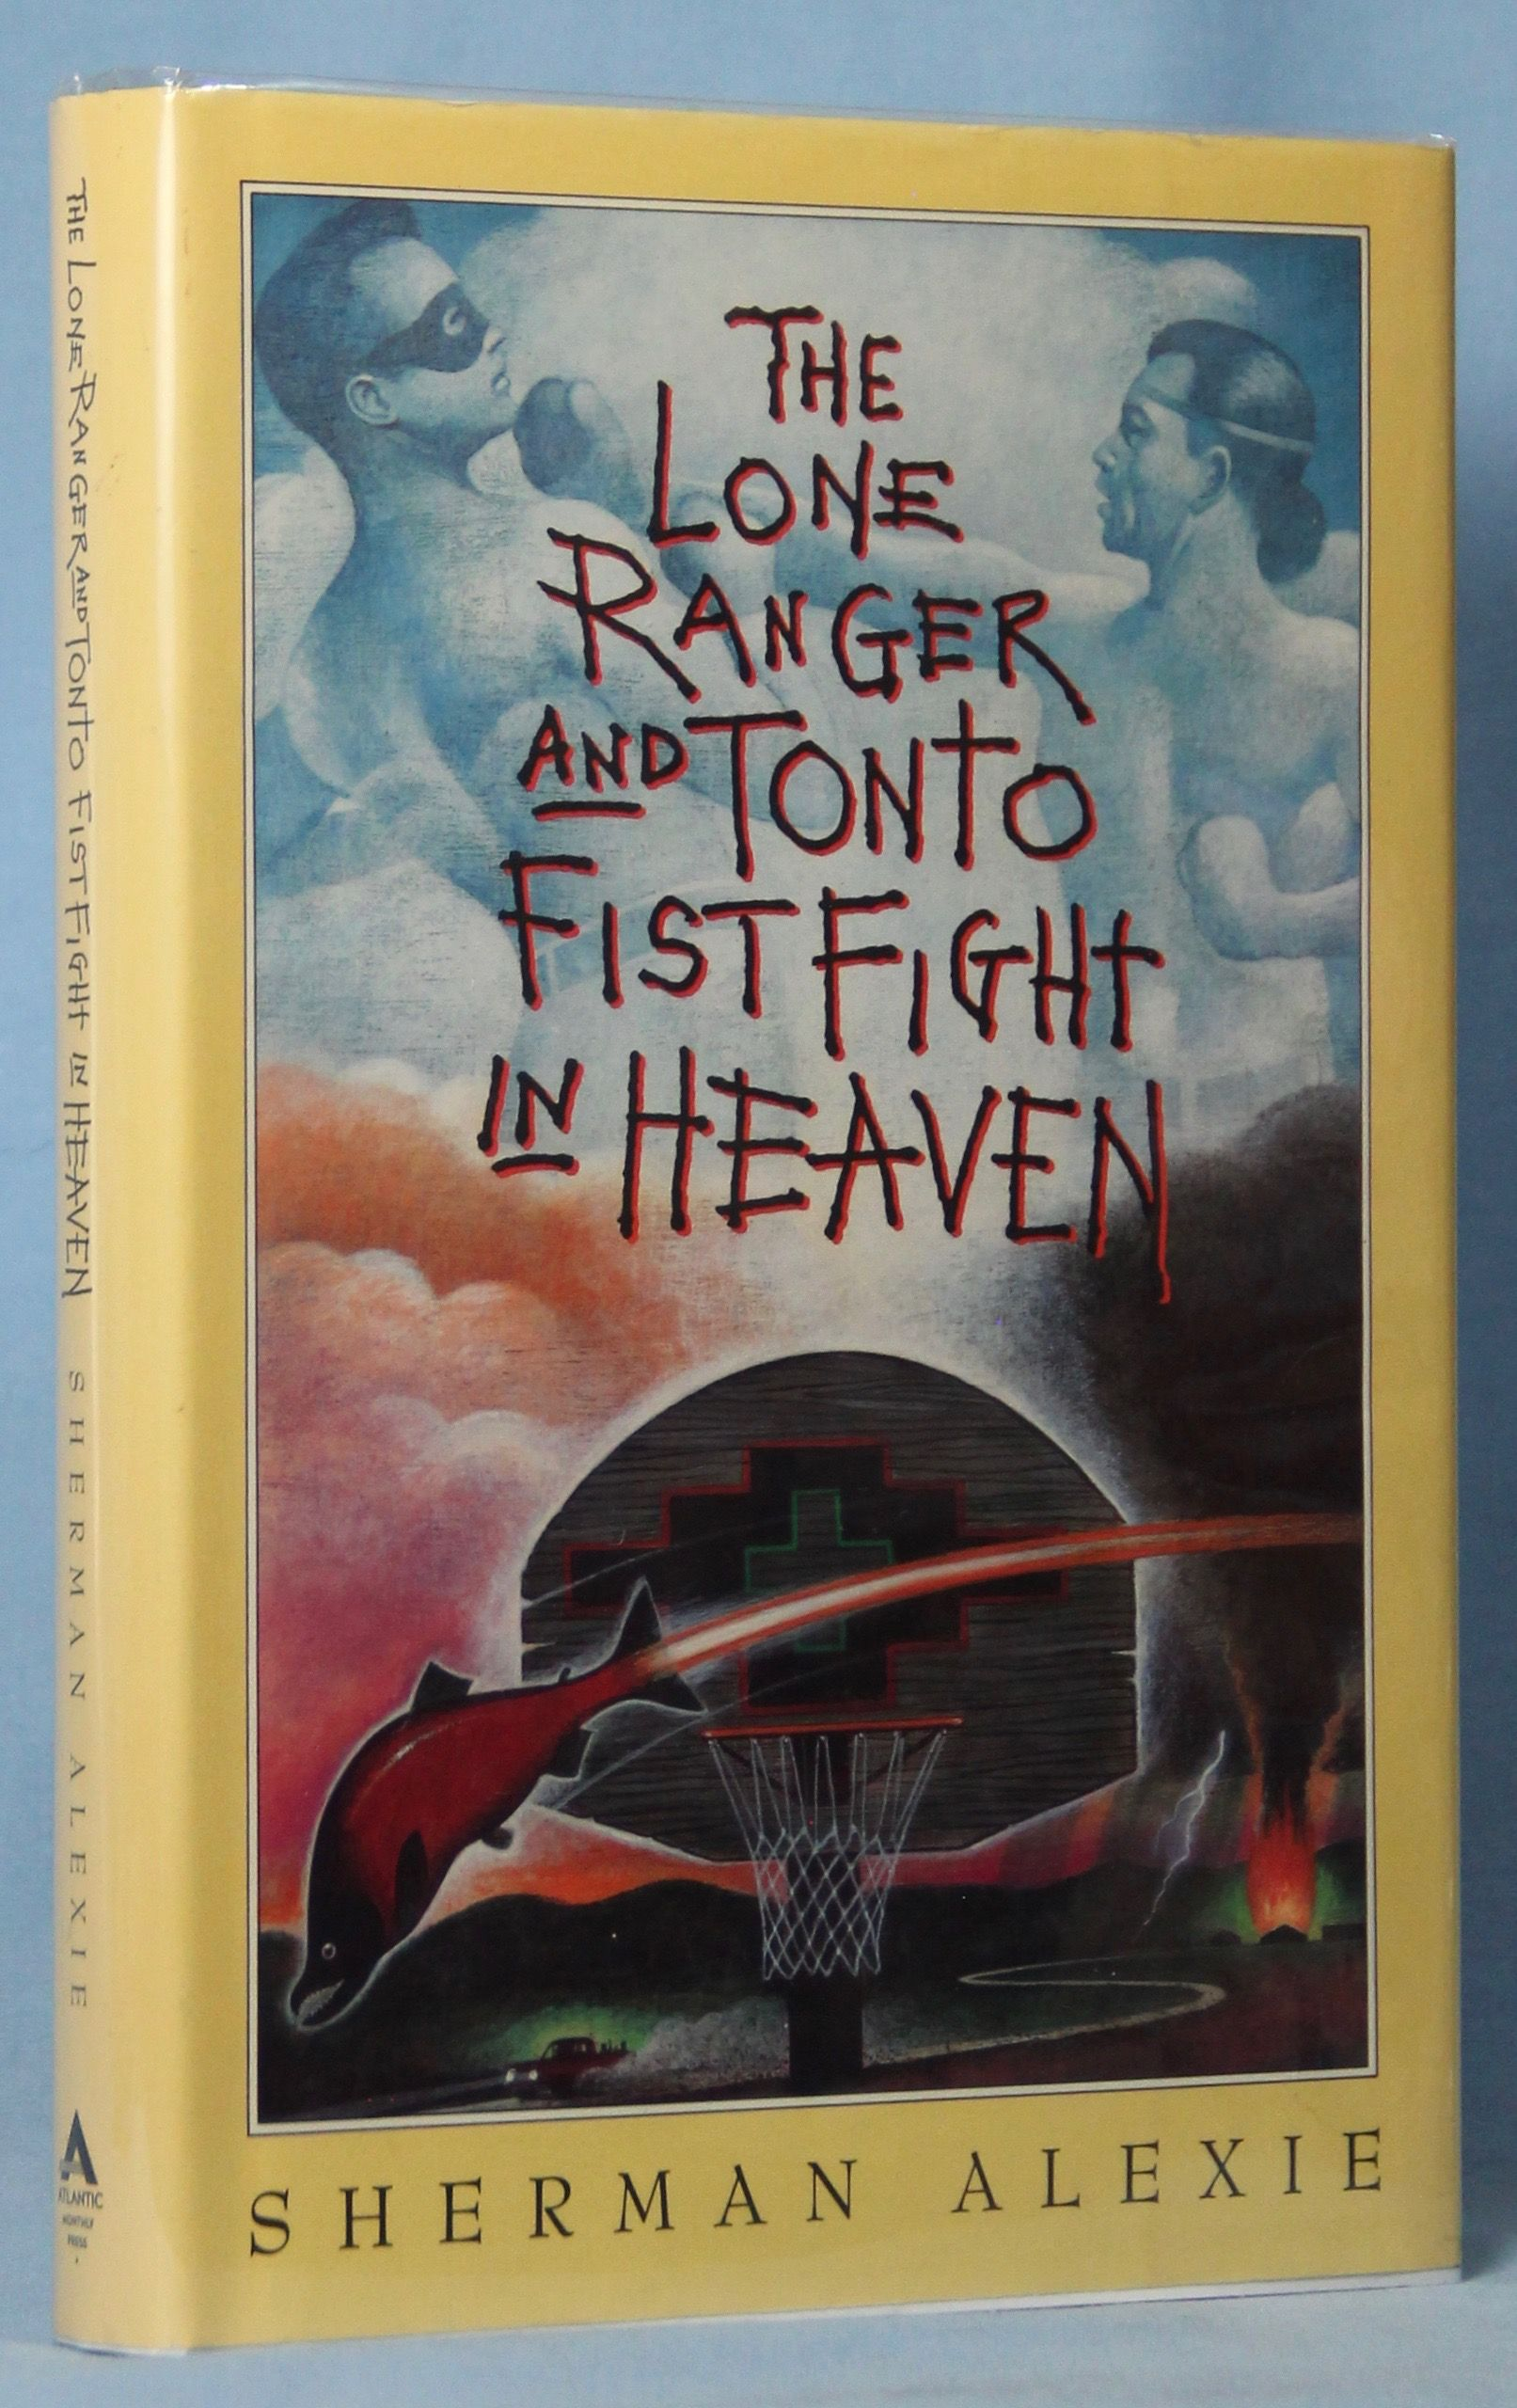 Image for The Lone Ranger And Tonto Fistfight In Heaven (Signed)